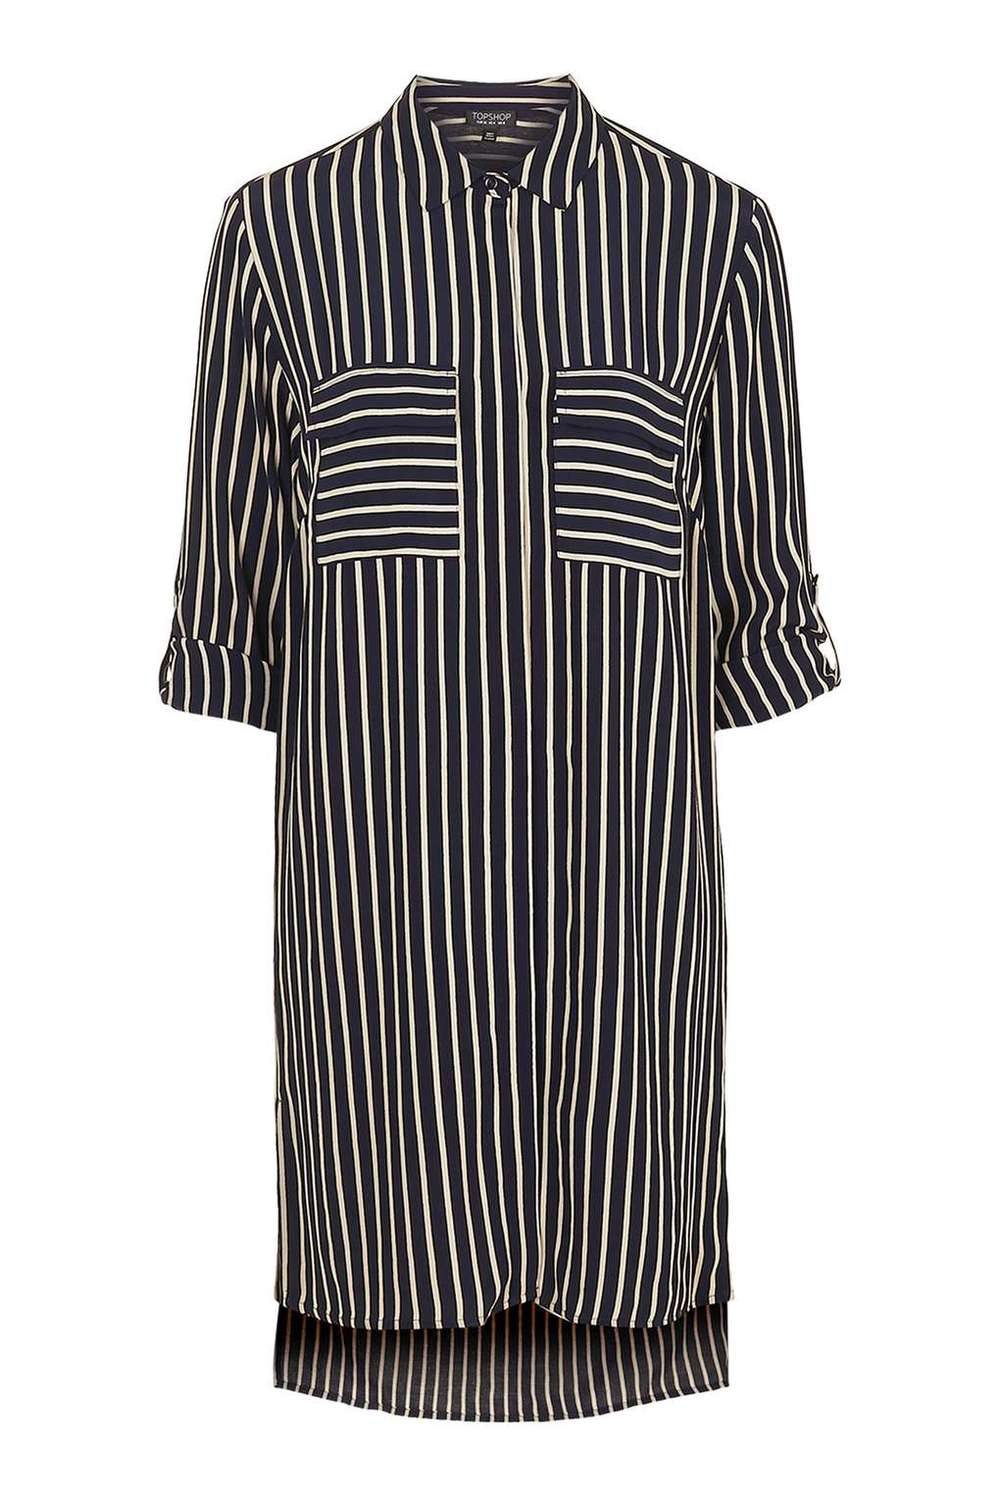 Oversized striped shirt dress- Topshop £20 (SALE GO!)